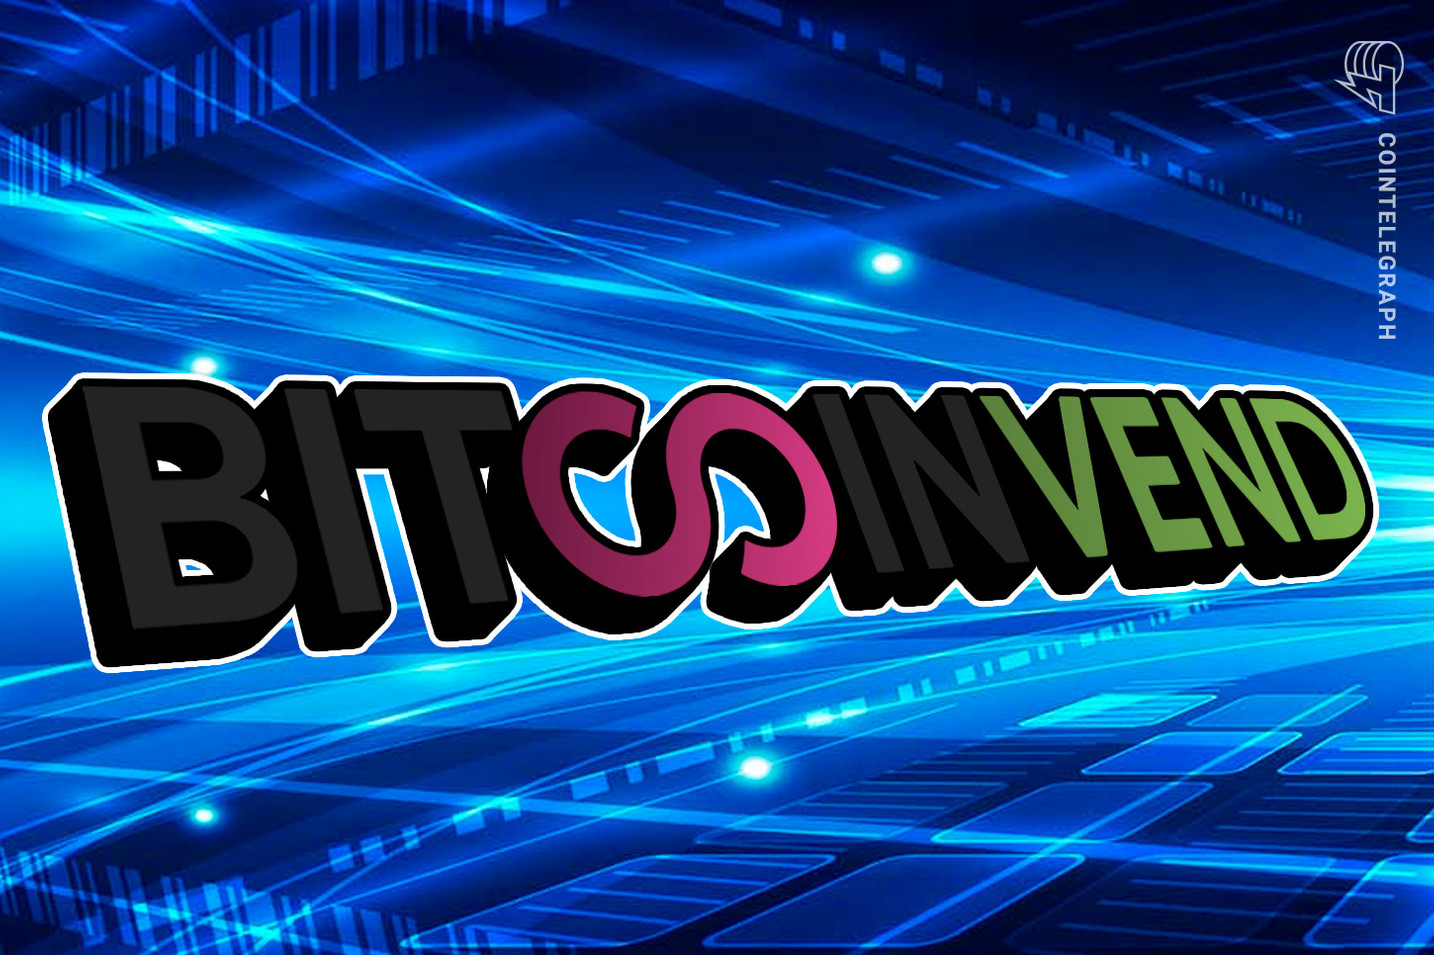 """""""We plan to put the 'currency' into crypto"""" says BitcoinVend, an exciting new startup"""